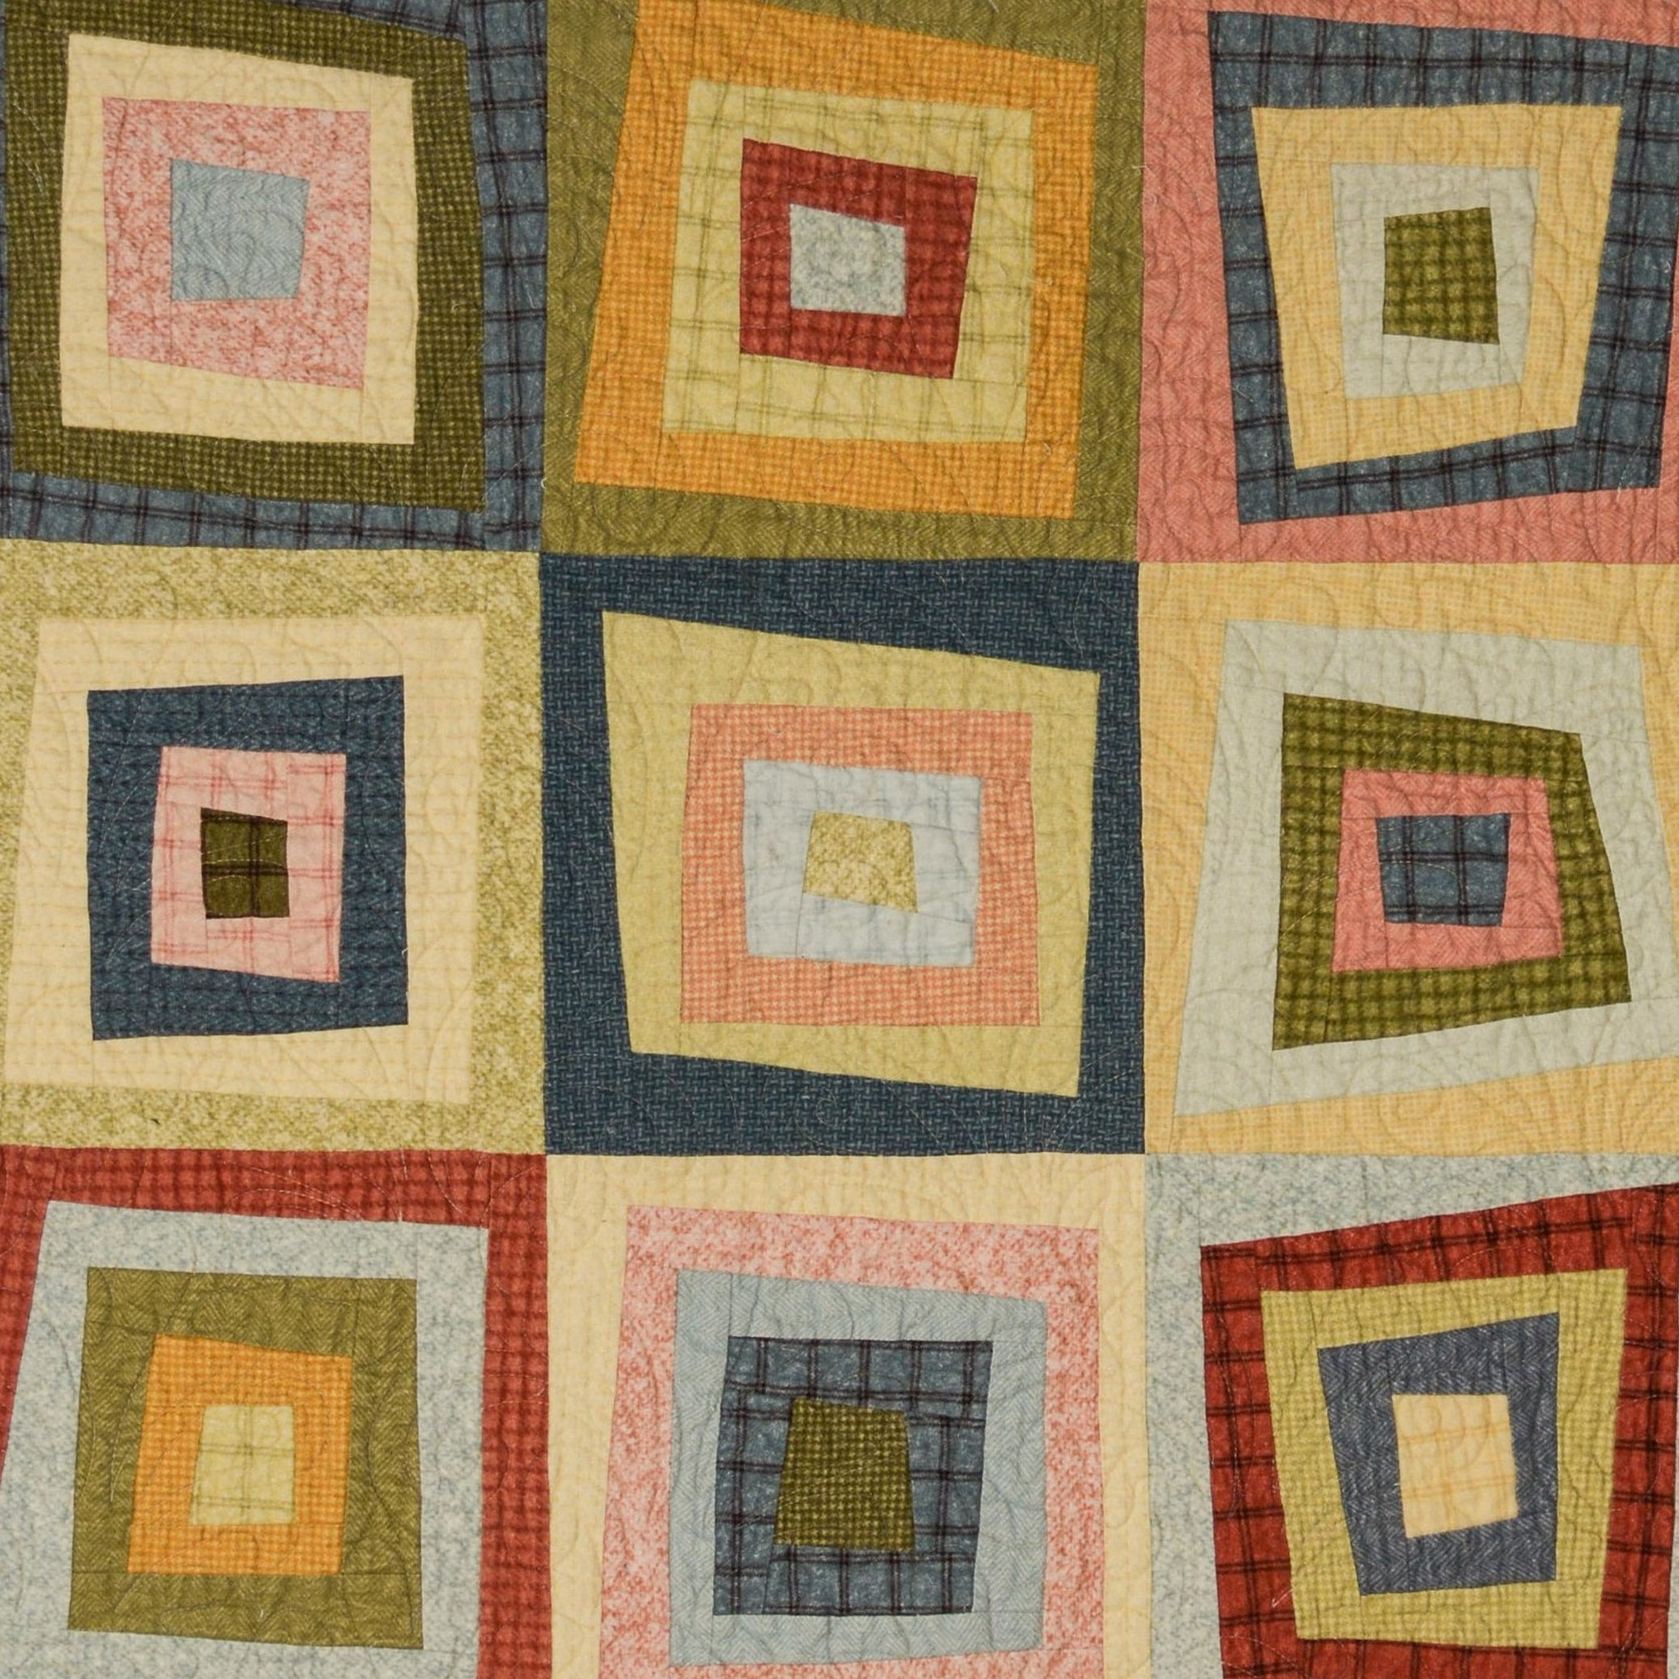 """Patterns - I've always loved scrap quilts. My approach to designing reflects """"the more scraps, the merrier"""" attitude. By incorporating scraps from prints to plaids, traditional blocks are transformed into stunning simple patterns with a touch of whimsy. Enjoy!"""